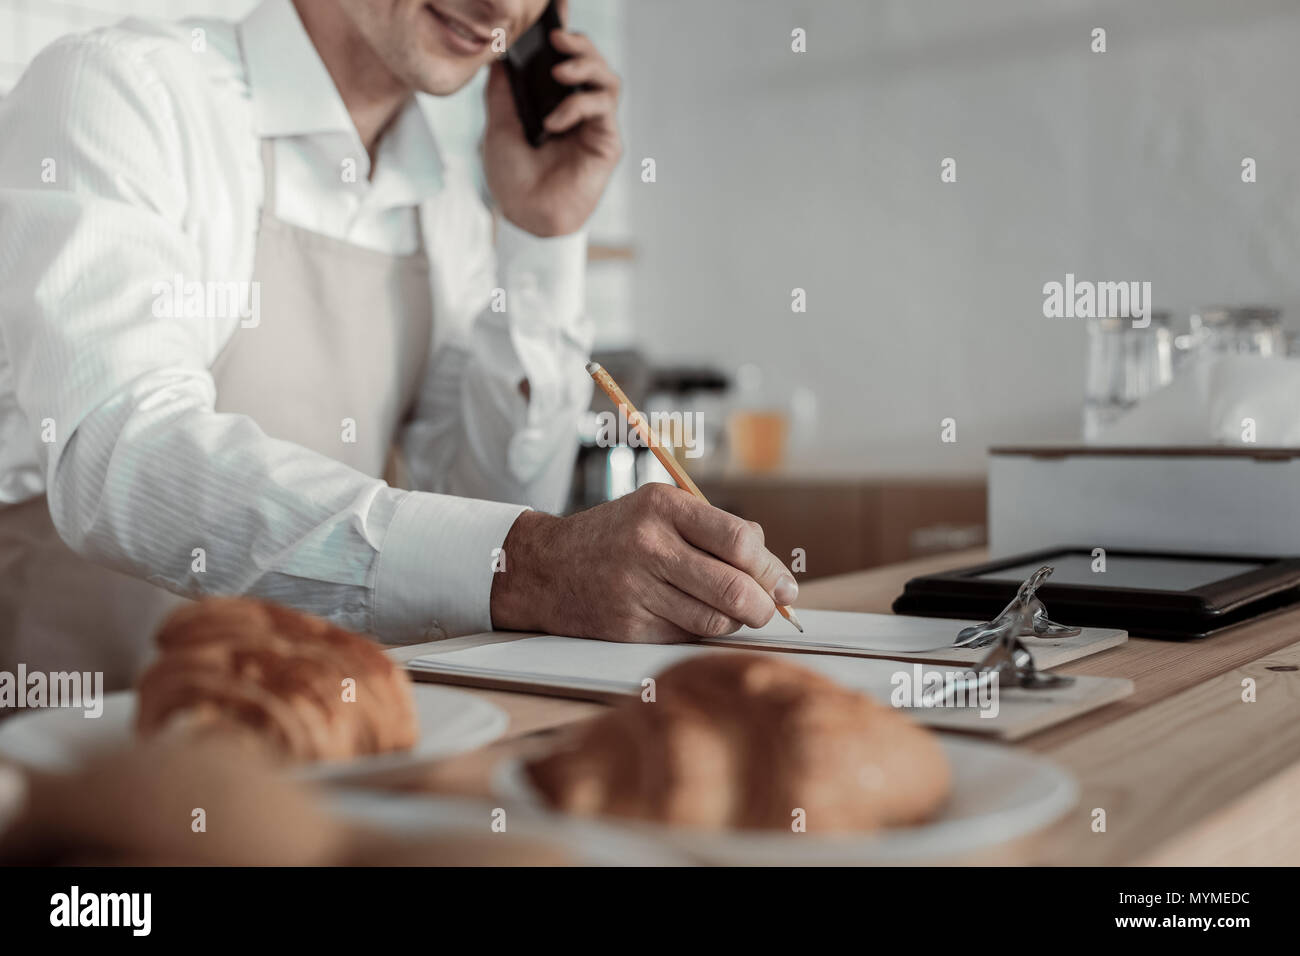 Competent businessman taking order per telephone - Stock Image